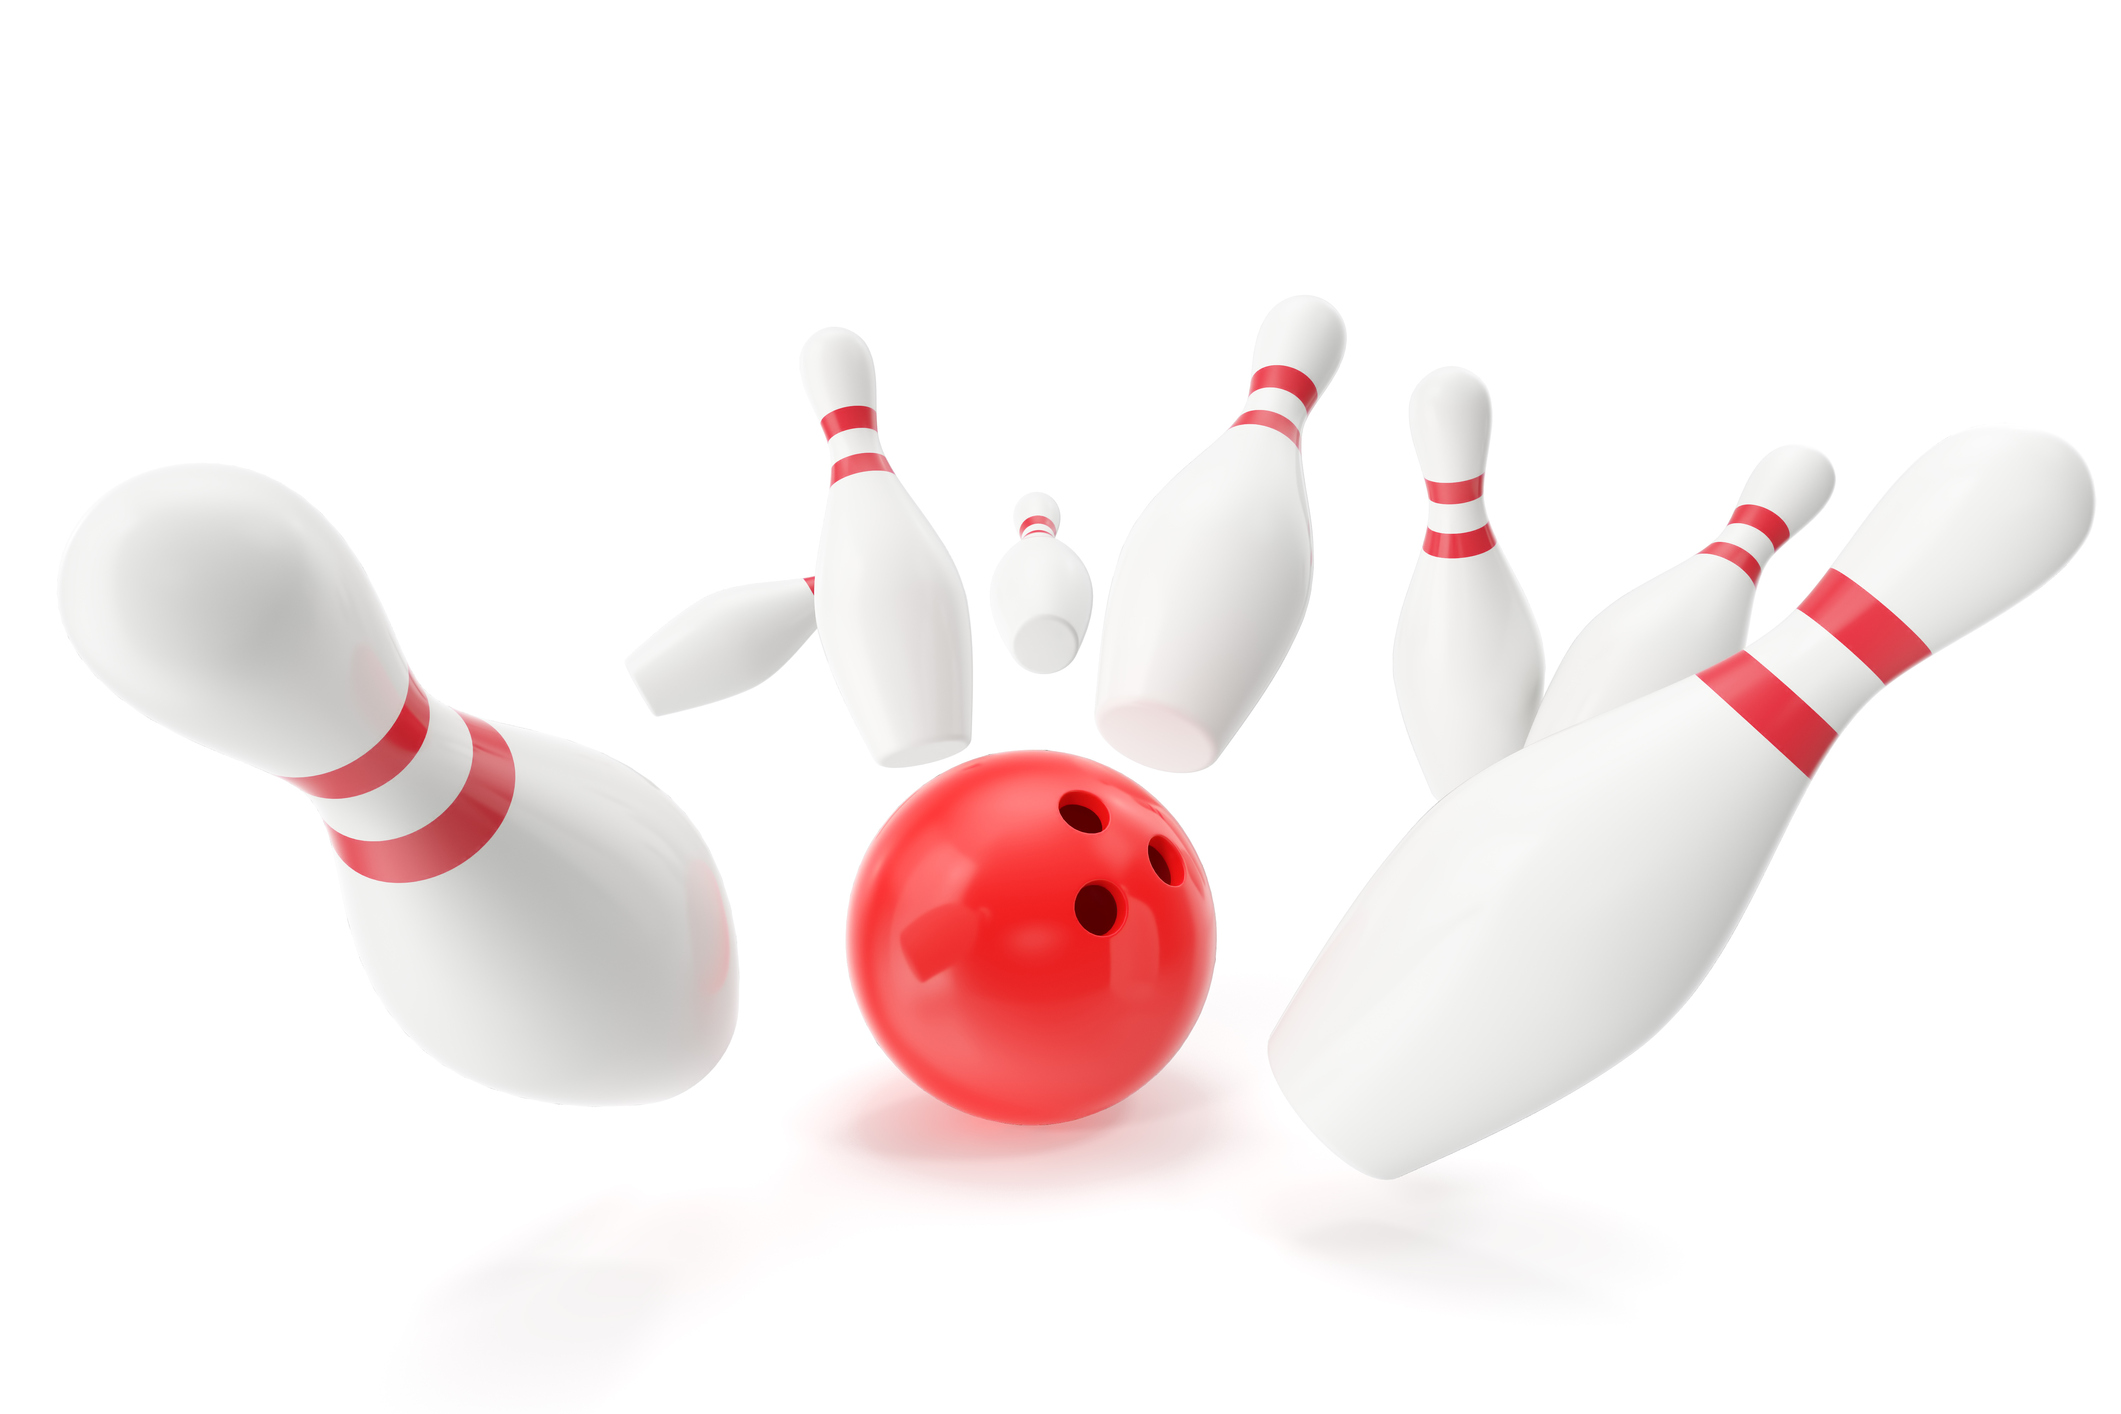 Bowling game, red ball crashing into the skittles. 3d illustration